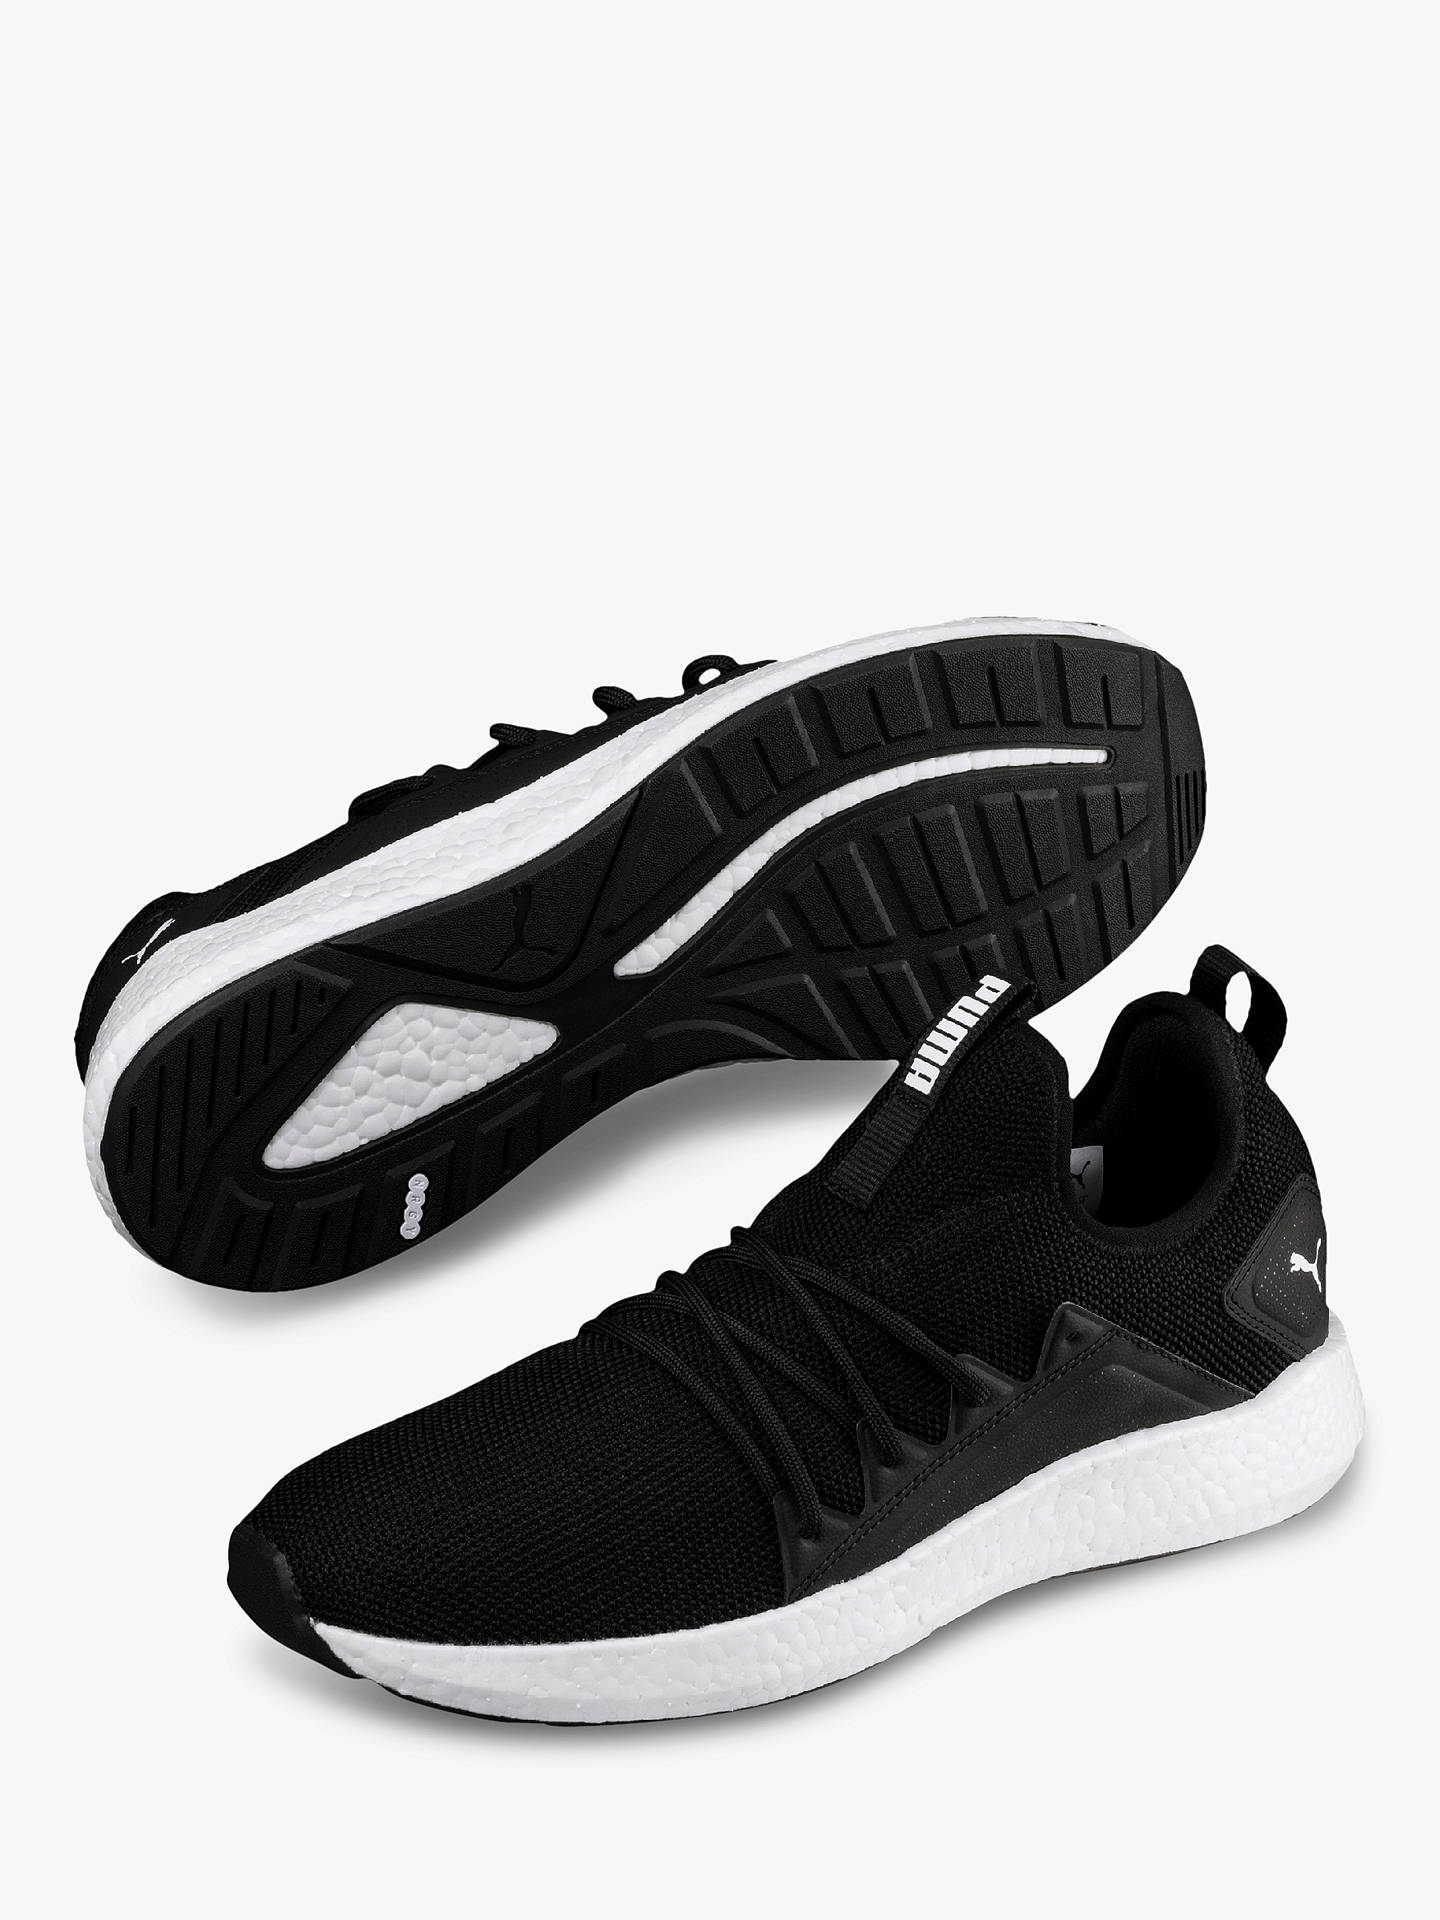 0e3559a6 PUMA NRGY Neko Knit Men's Running Shoes, Black at John Lewis & Partners